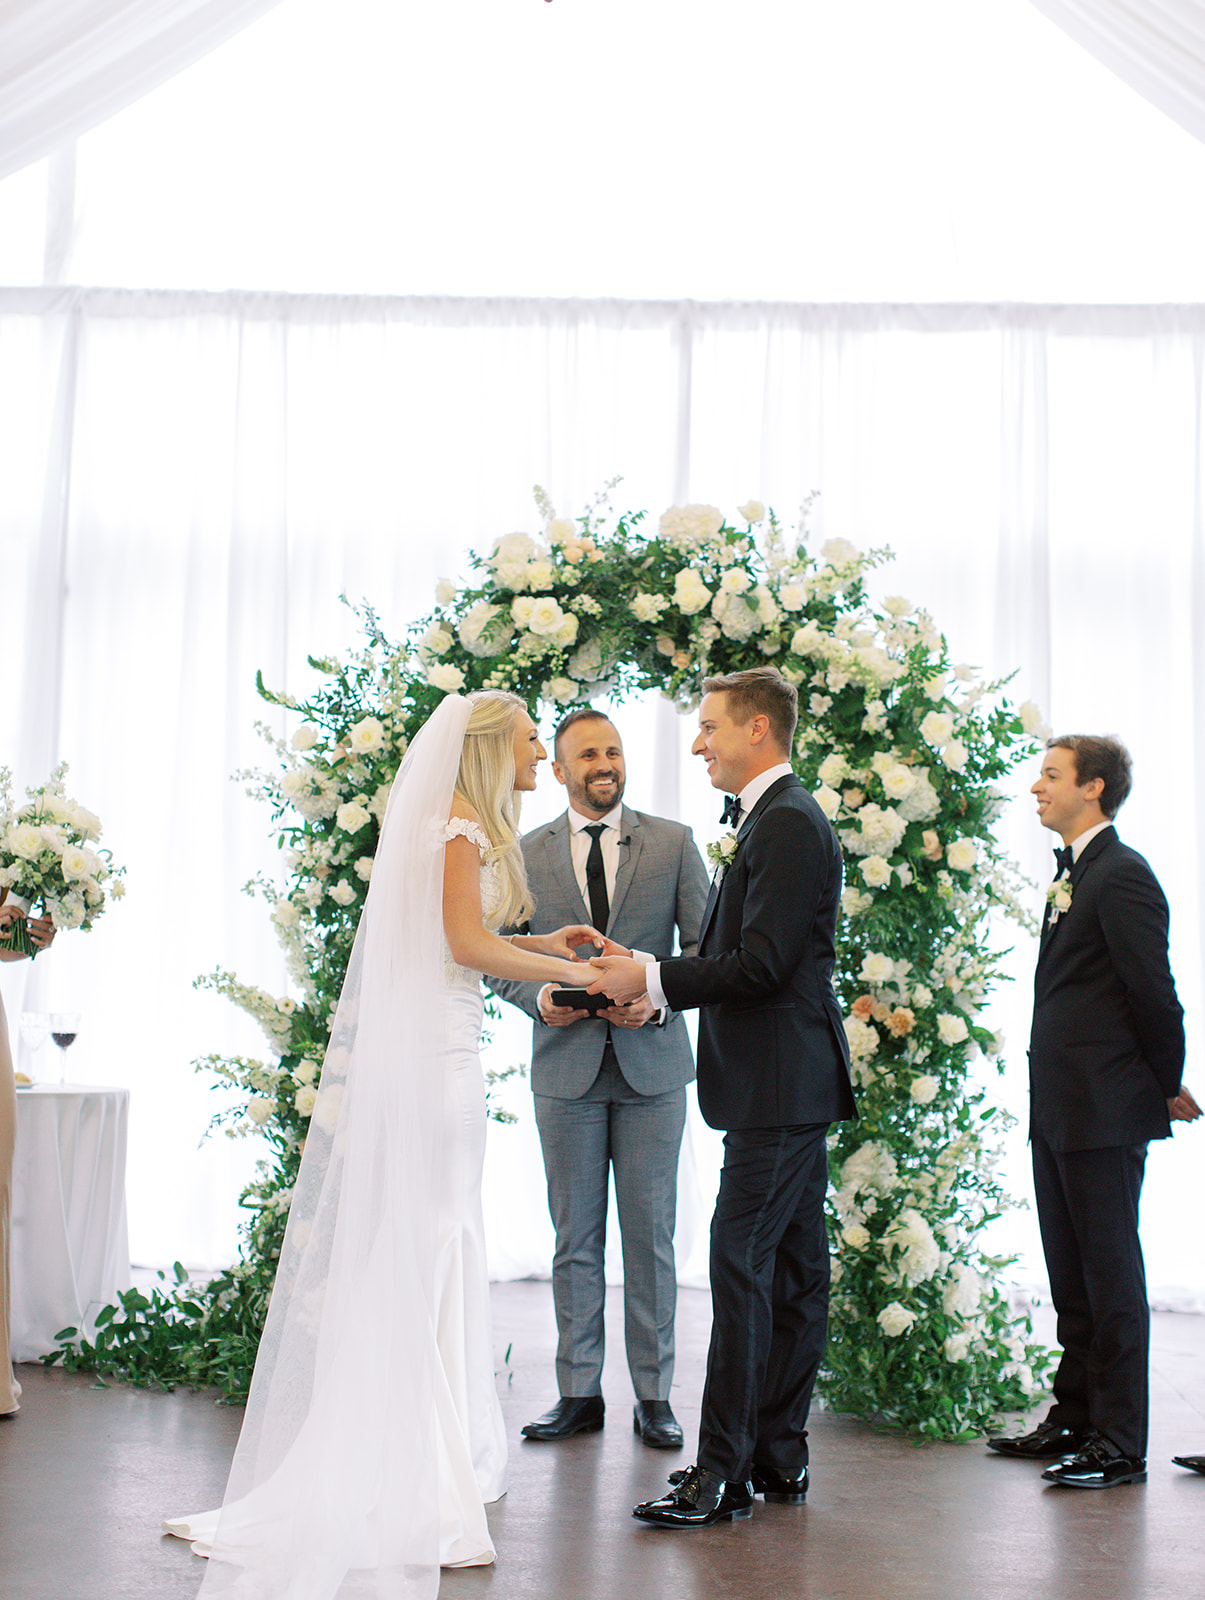 Bride and groom holding hands in front of alter